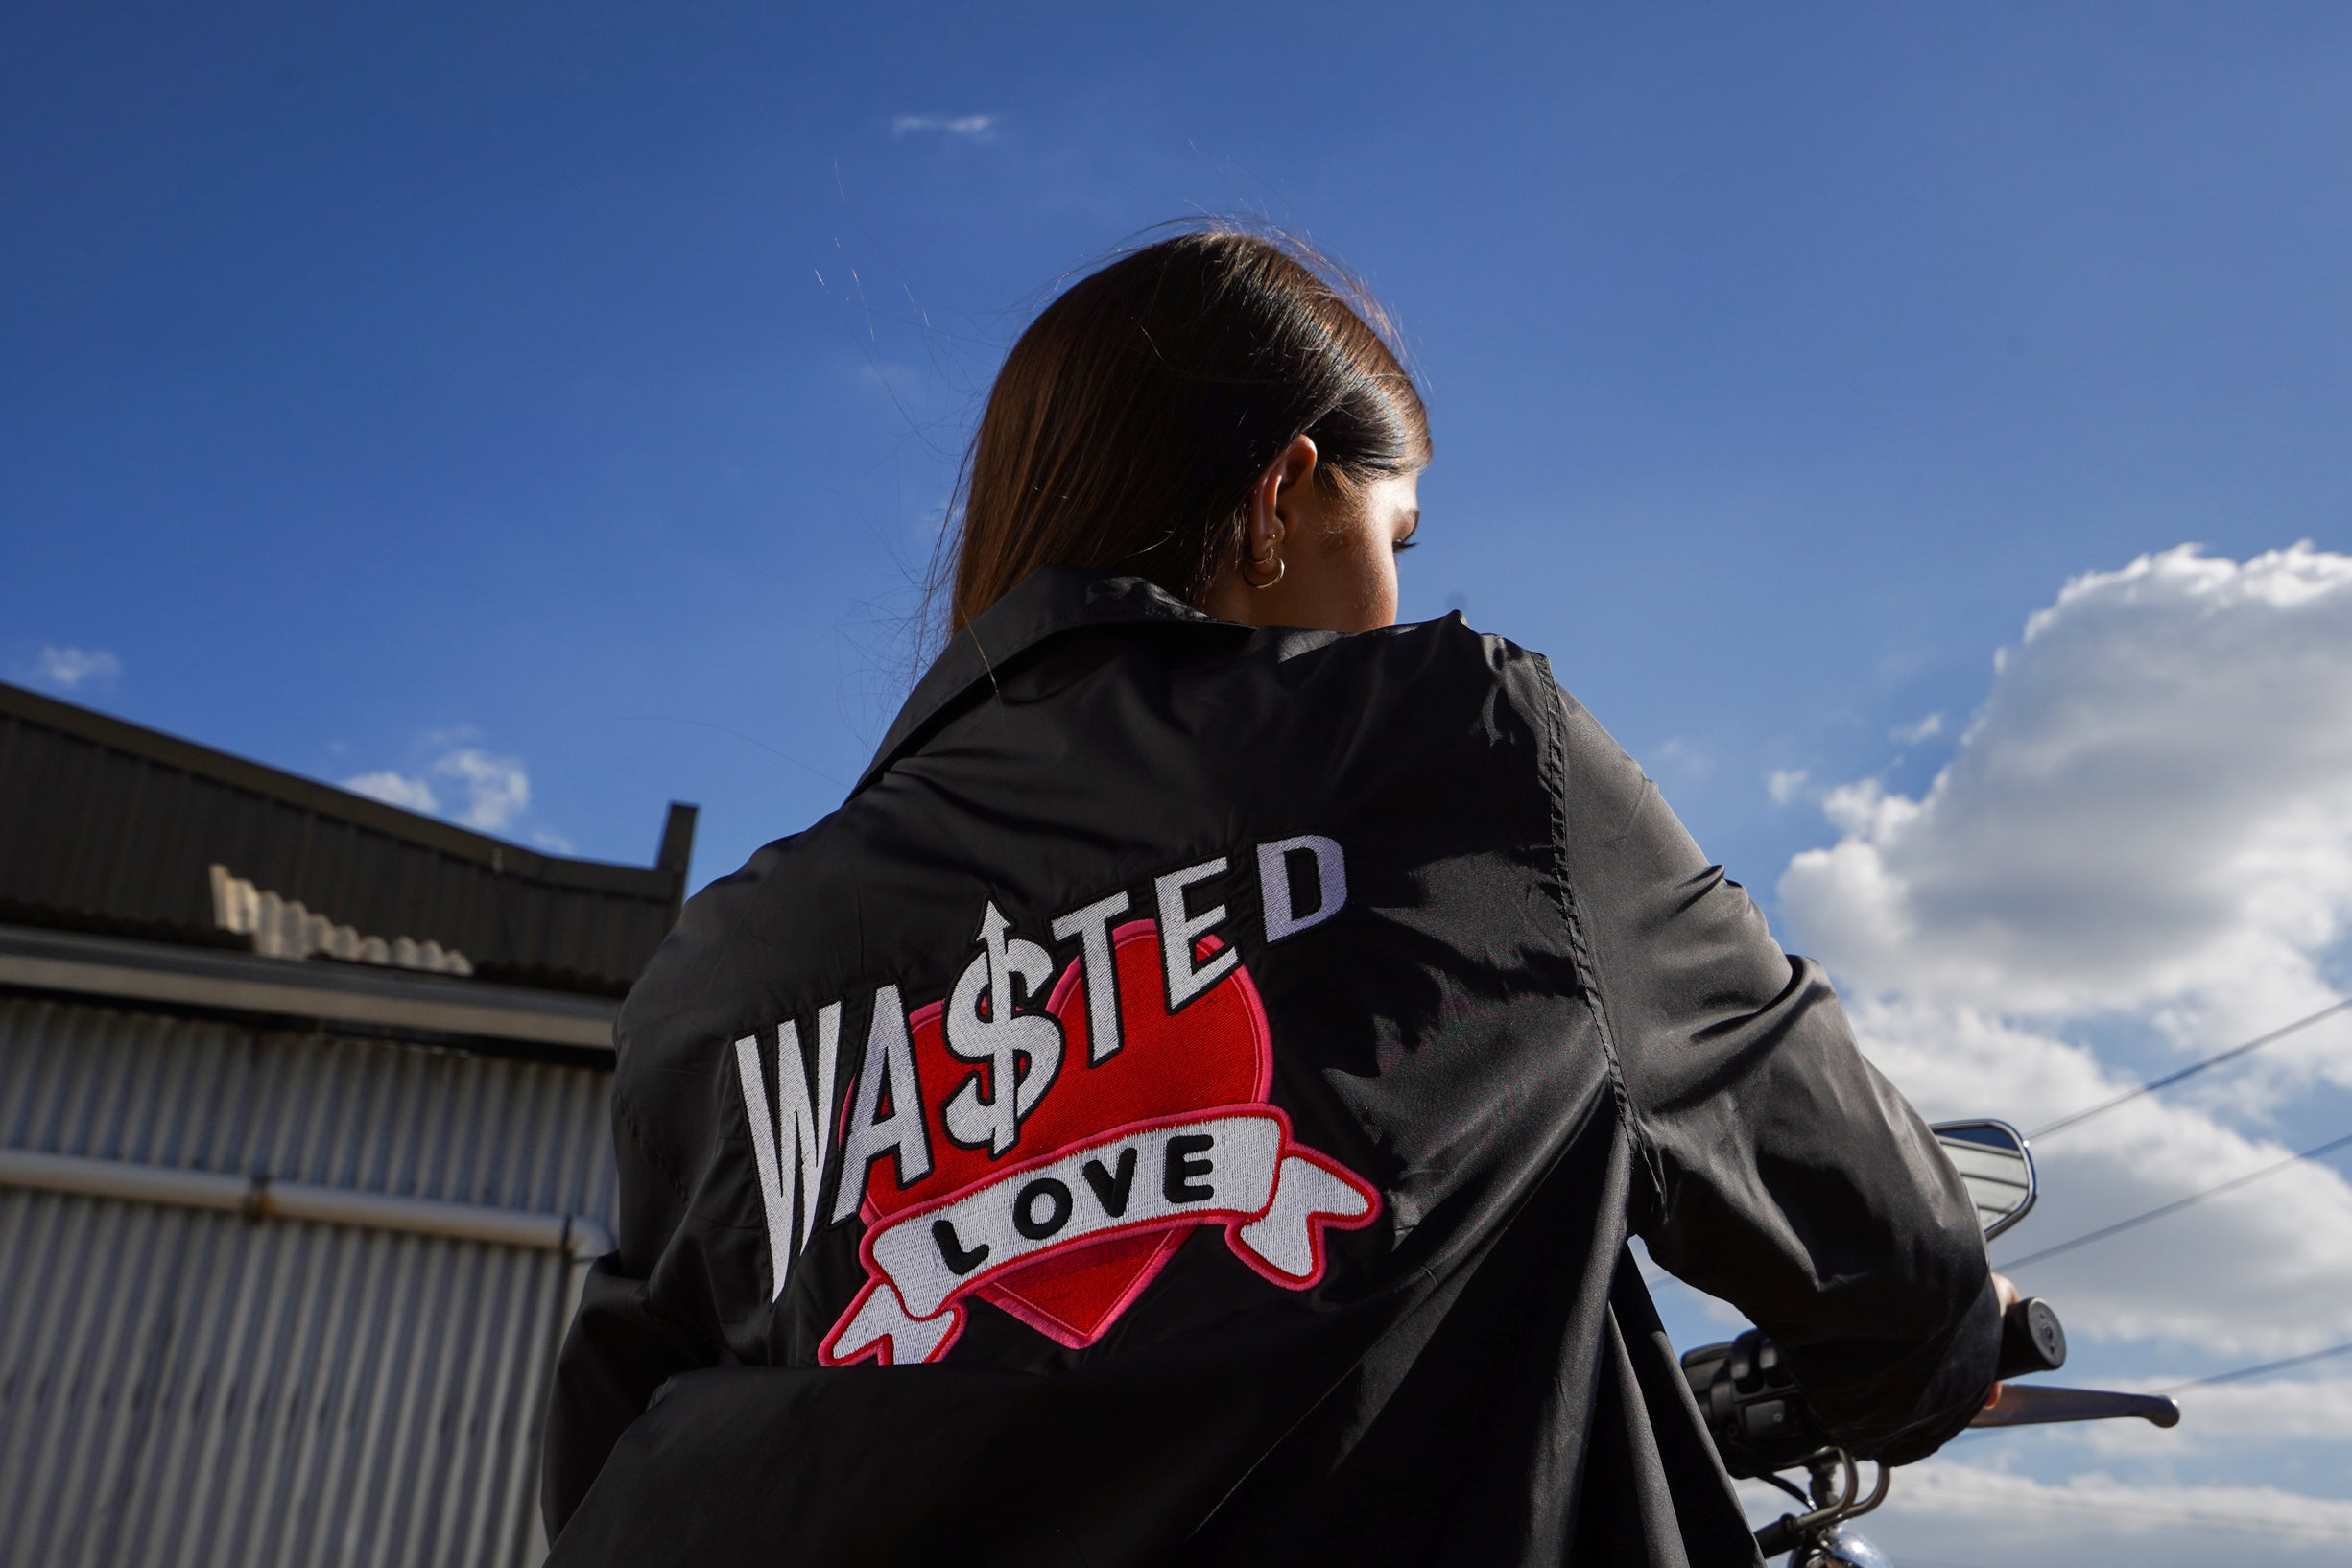 Wasted Love Jacket